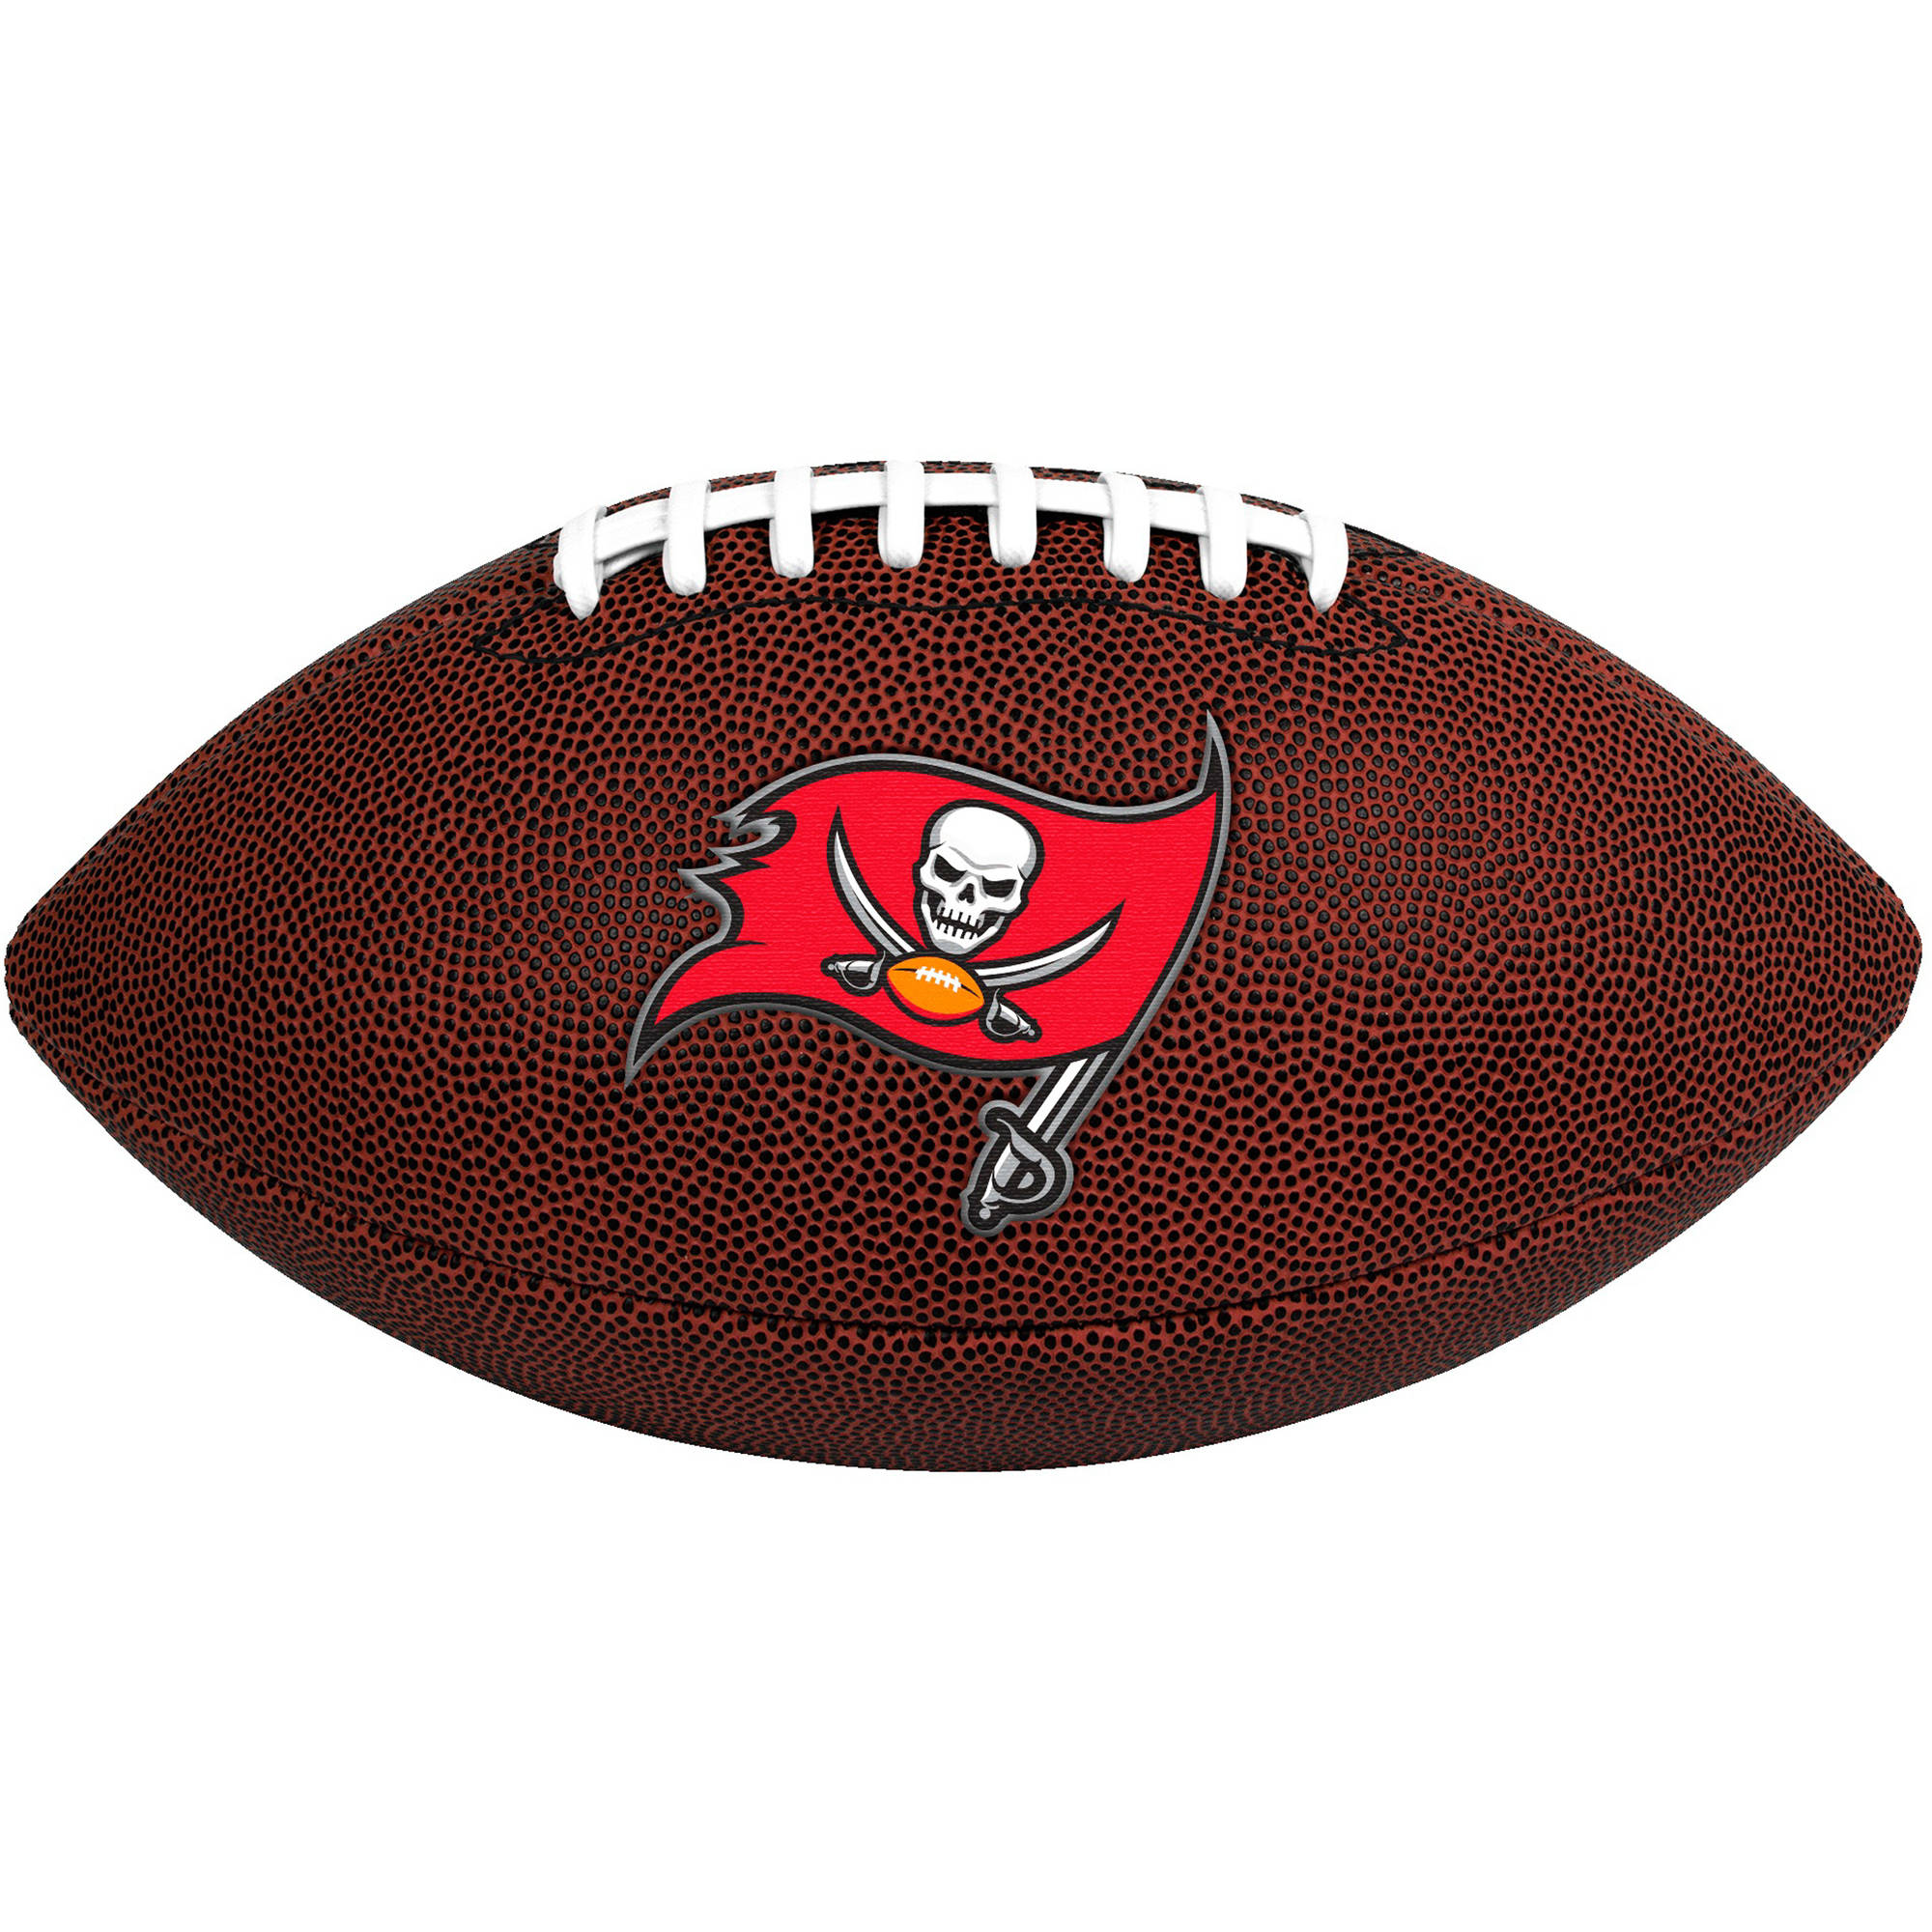 Rawlings NFL Official Size Game Time Football, Tampa Bay Buccaneers